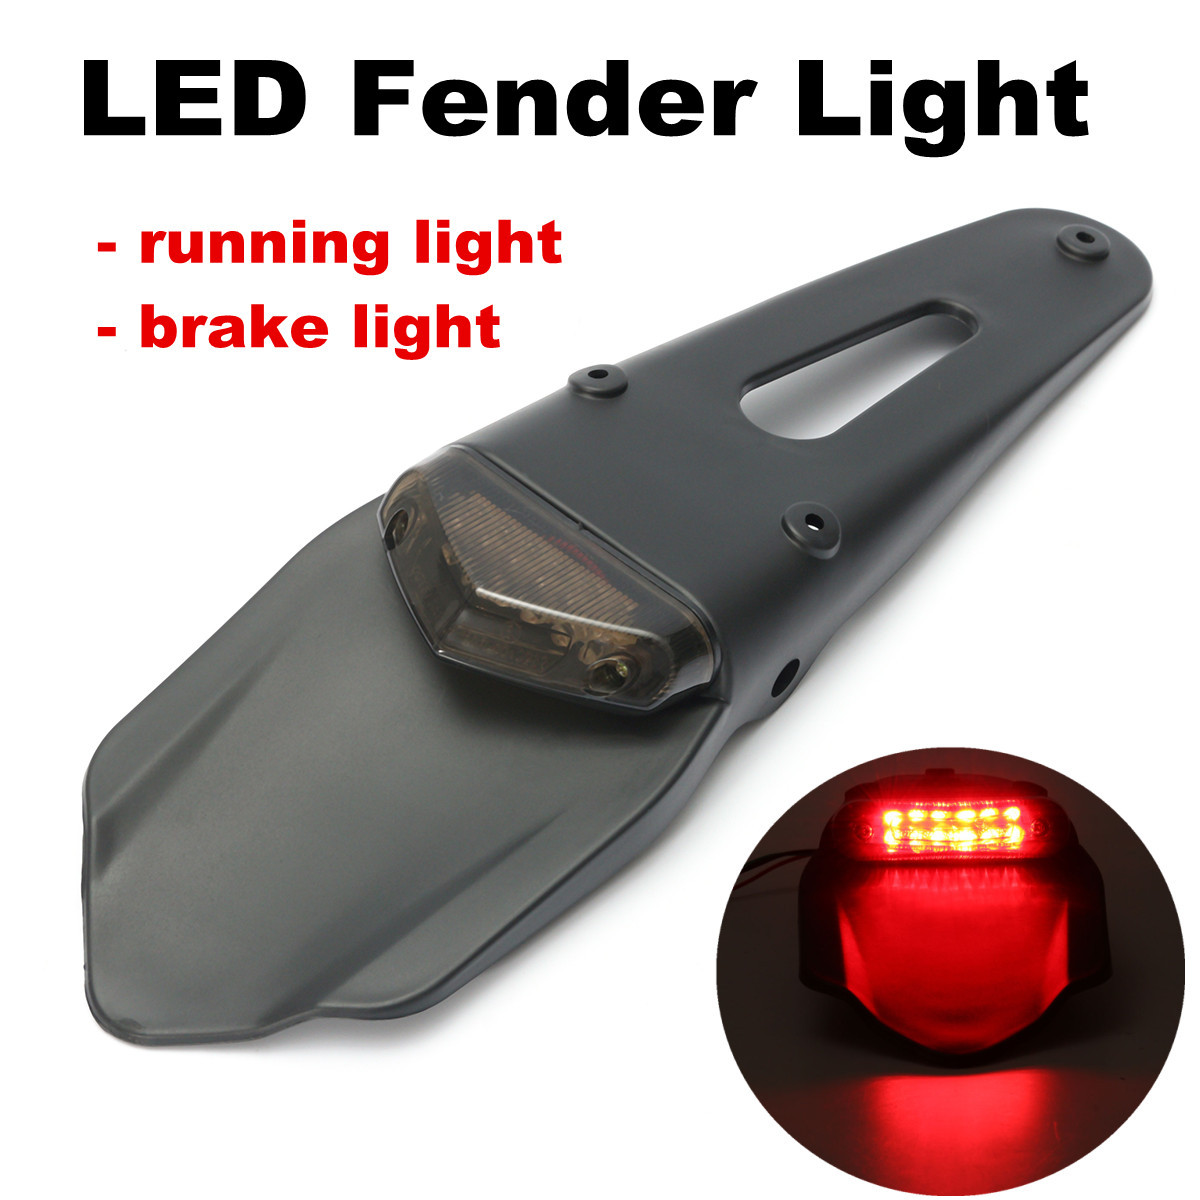 Universal motorrad fr fender licht 12 led lampe brechen universal motorrad fr fender licht 12 led lampe brechen rckleuchte aufkantung lampe rot in universal motorrad fr fender licht 12 led lampe brechen parisarafo Image collections